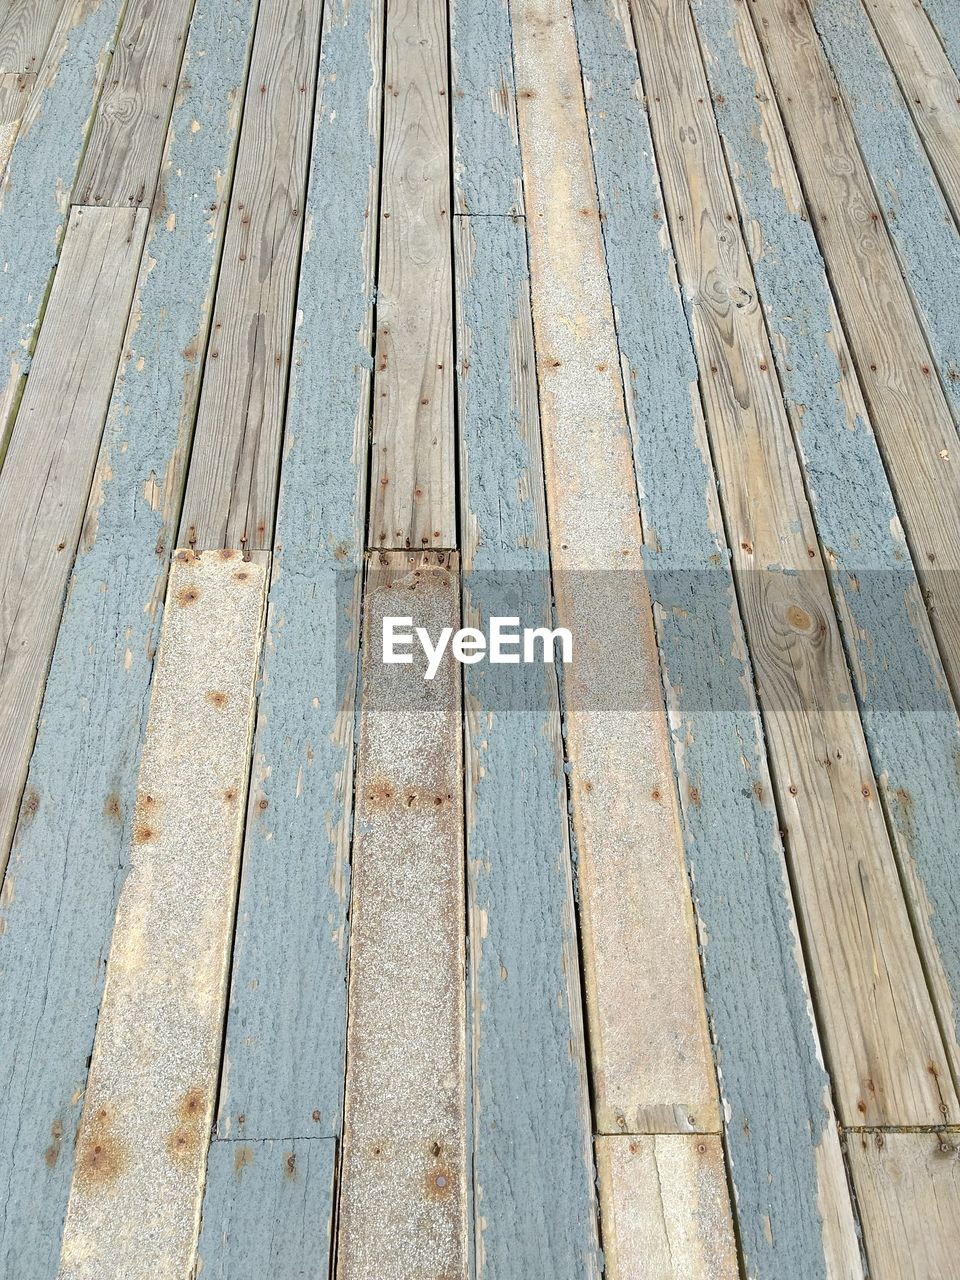 wood - material, wood, pattern, backgrounds, no people, full frame, plank, old, flooring, in a row, textured, footpath, high angle view, close-up, day, hardwood floor, outdoors, floorboard, striped, rough, wood paneling, wood grain, surface level